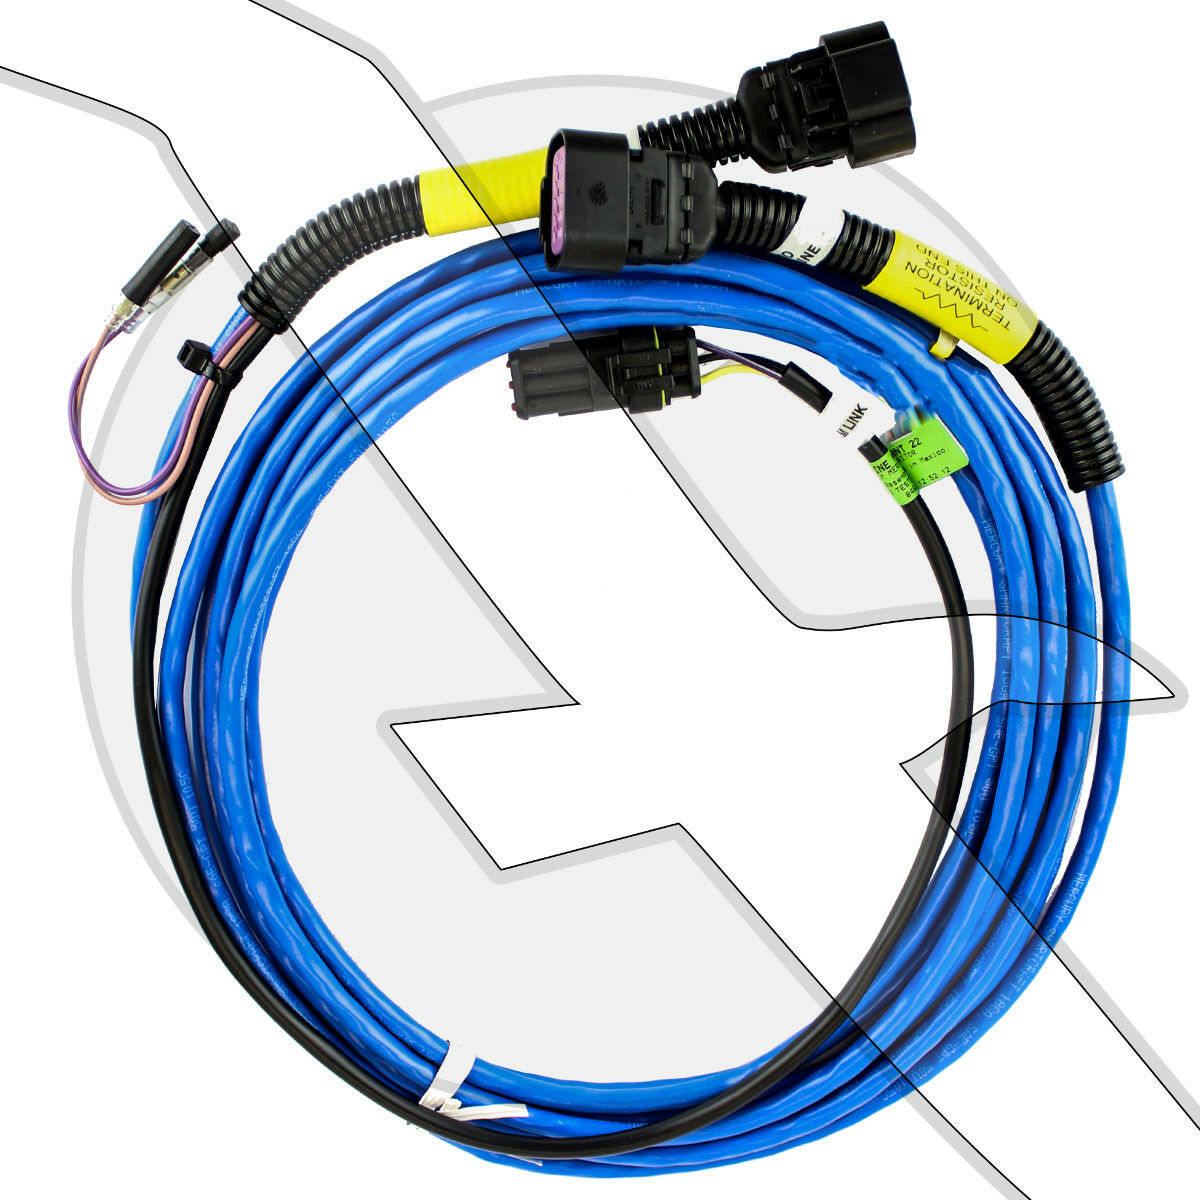 Mercury Marine SportJet Jet Drive Smarcraft Monitor Wire Harness  84-879982T20 1 of 1Only 1 available ...